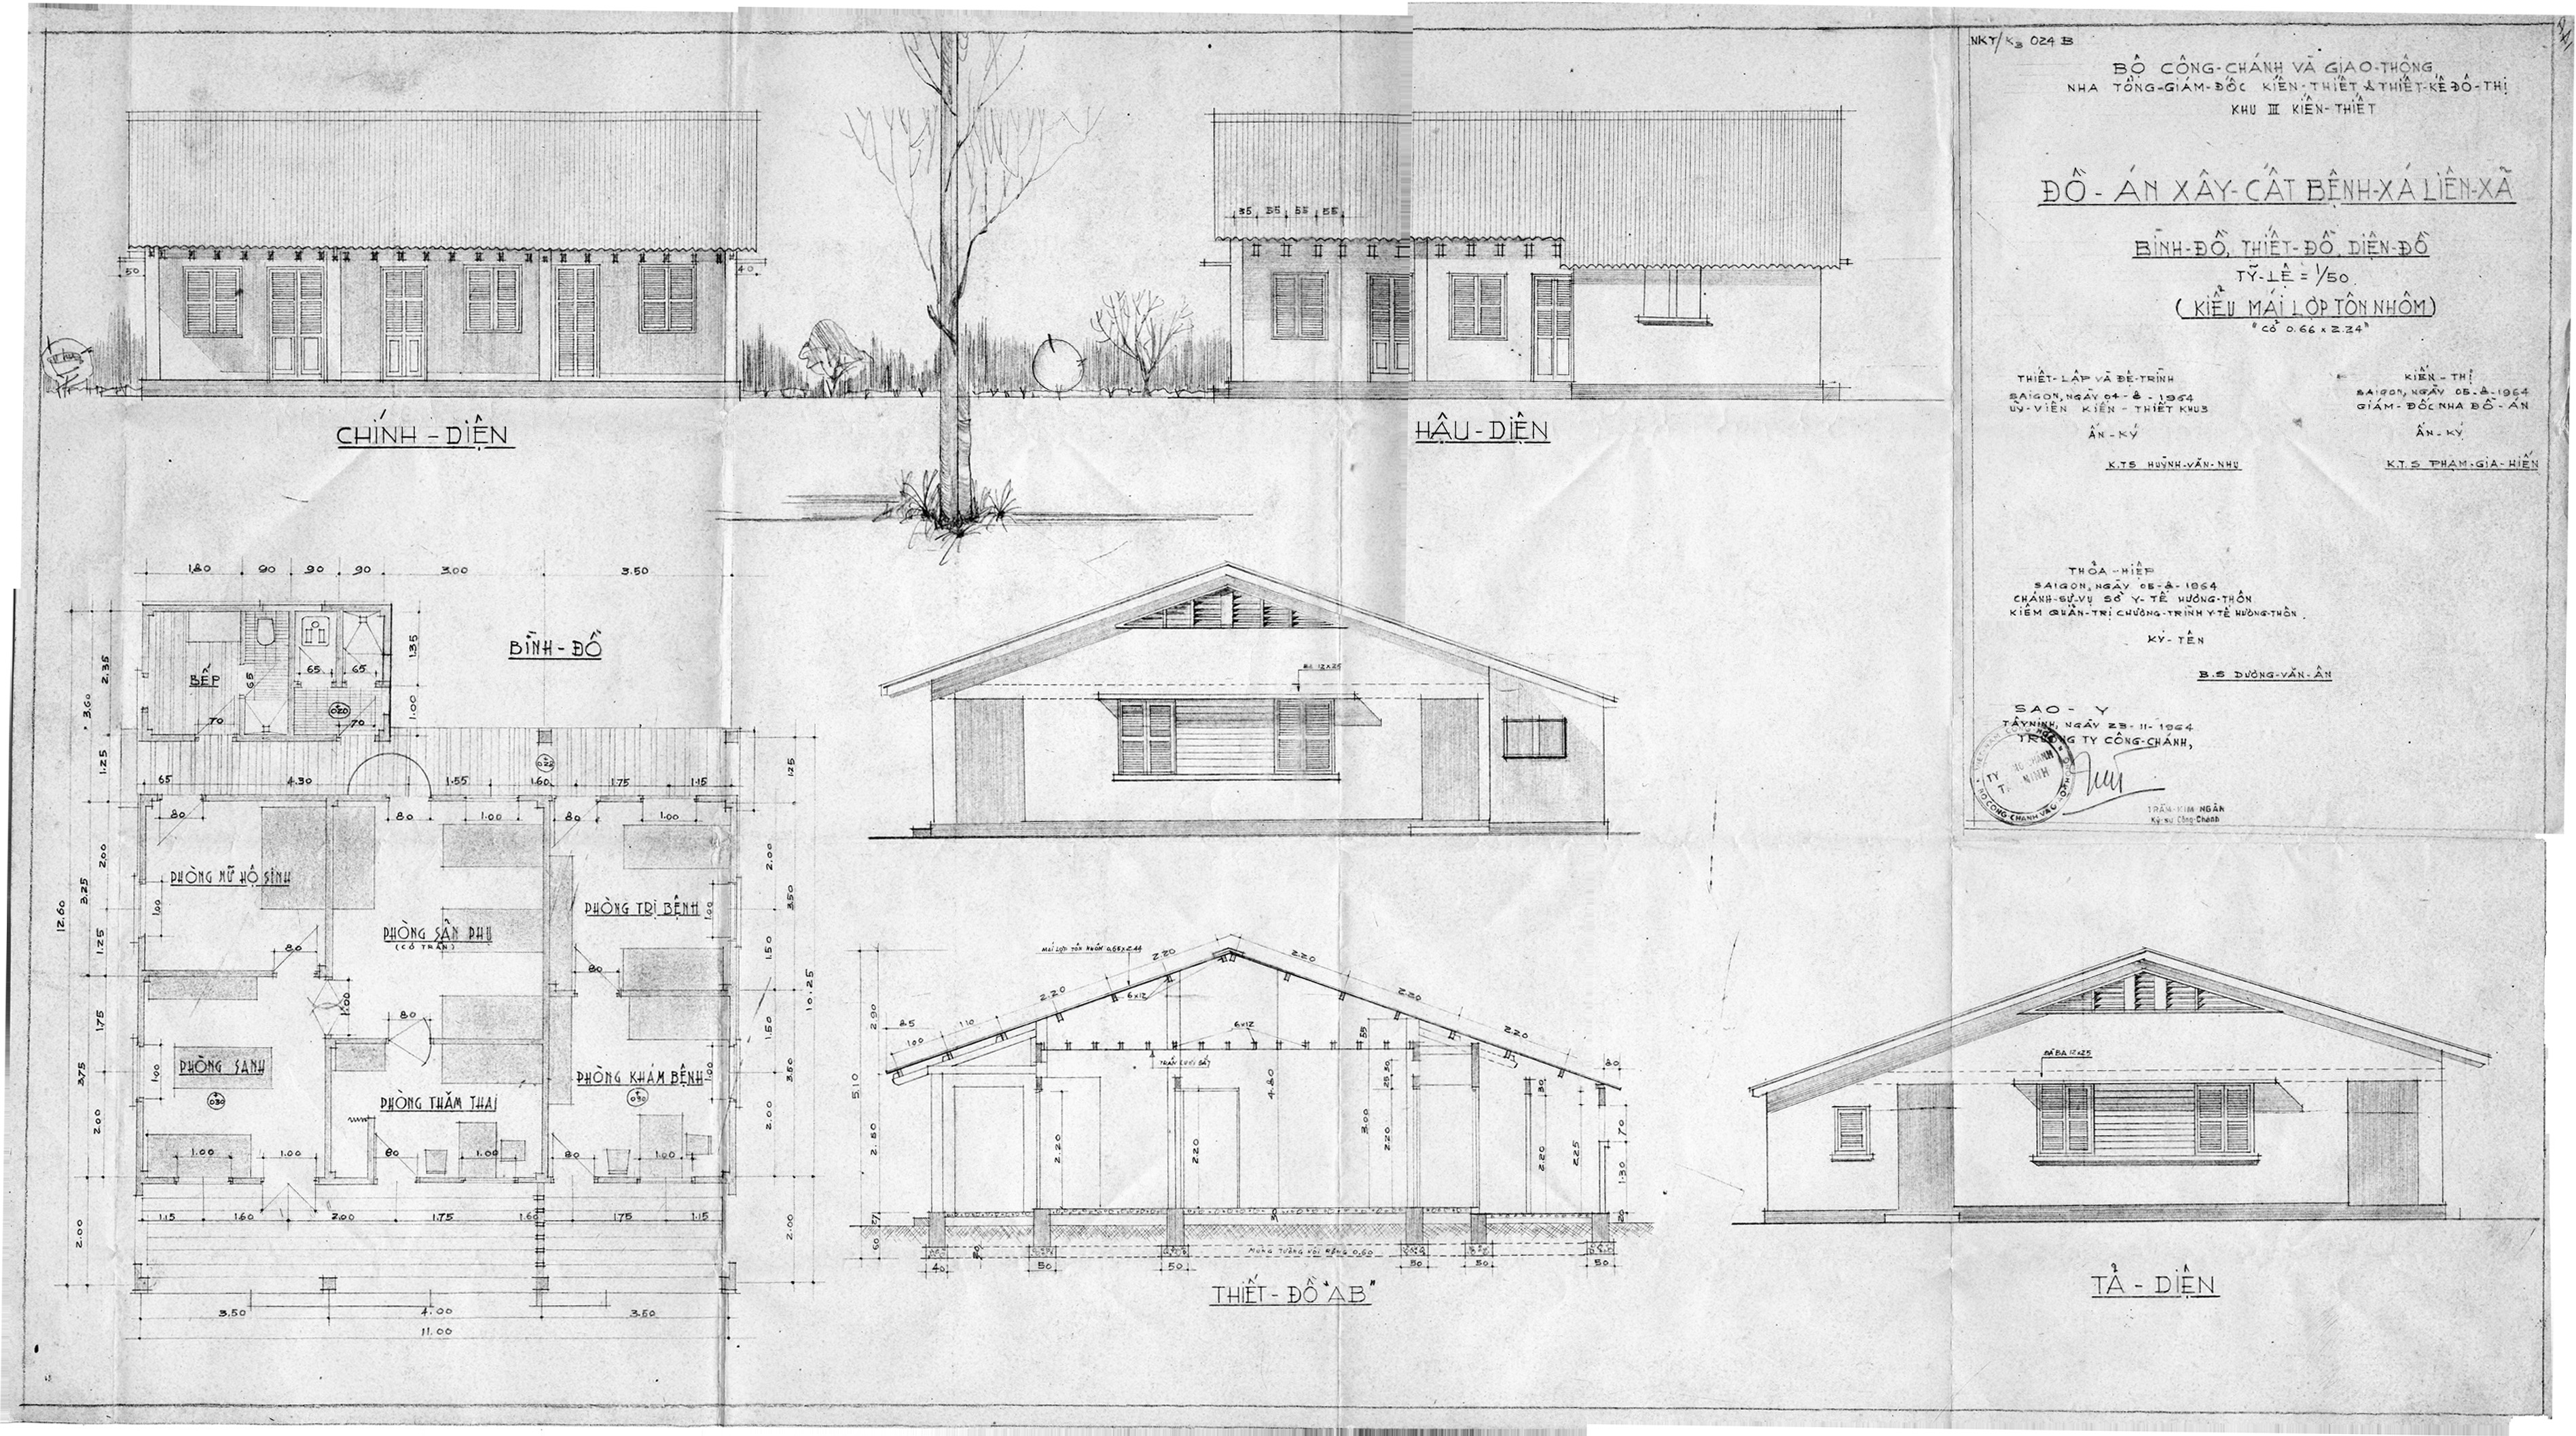 Blueprint for infirmary building, 1964